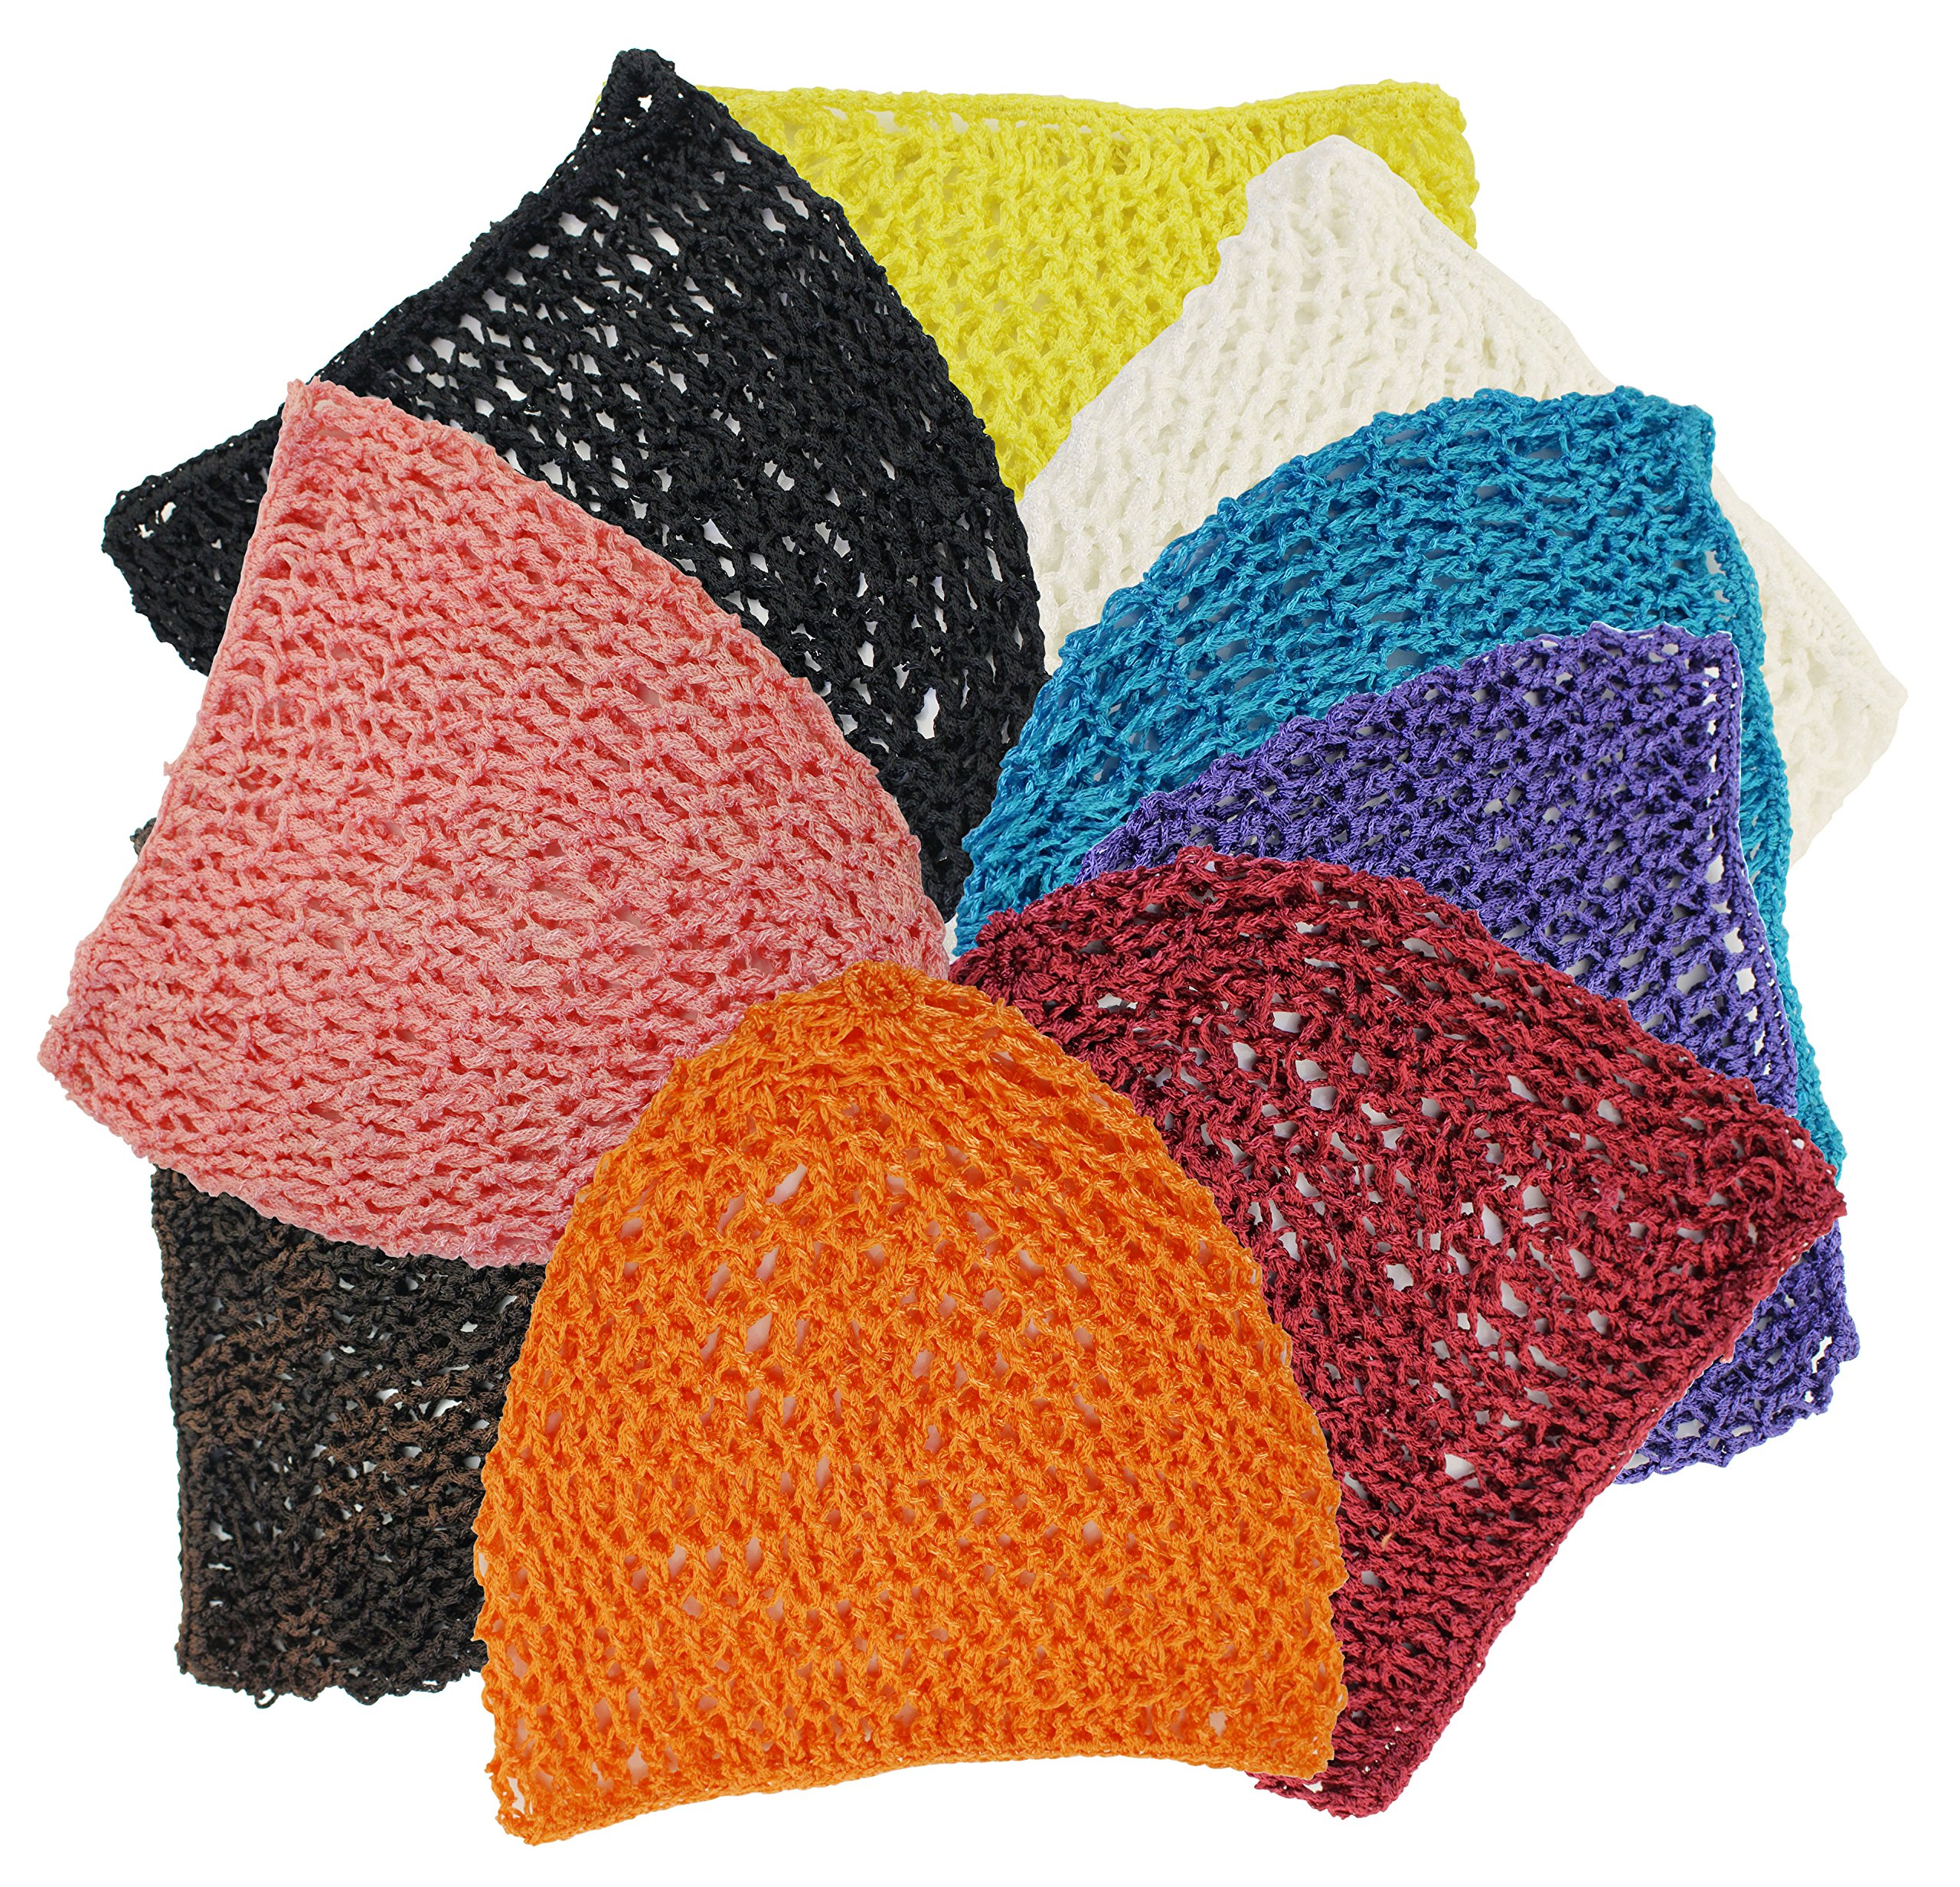 One Size, Comfortable, Thick and Short Hair net snoods, 9 Wonderful Colors for You to Choose, A Ture Value Pack- 6 The Same Color in The Package or 9 a Pack. (9 Mix Colors)